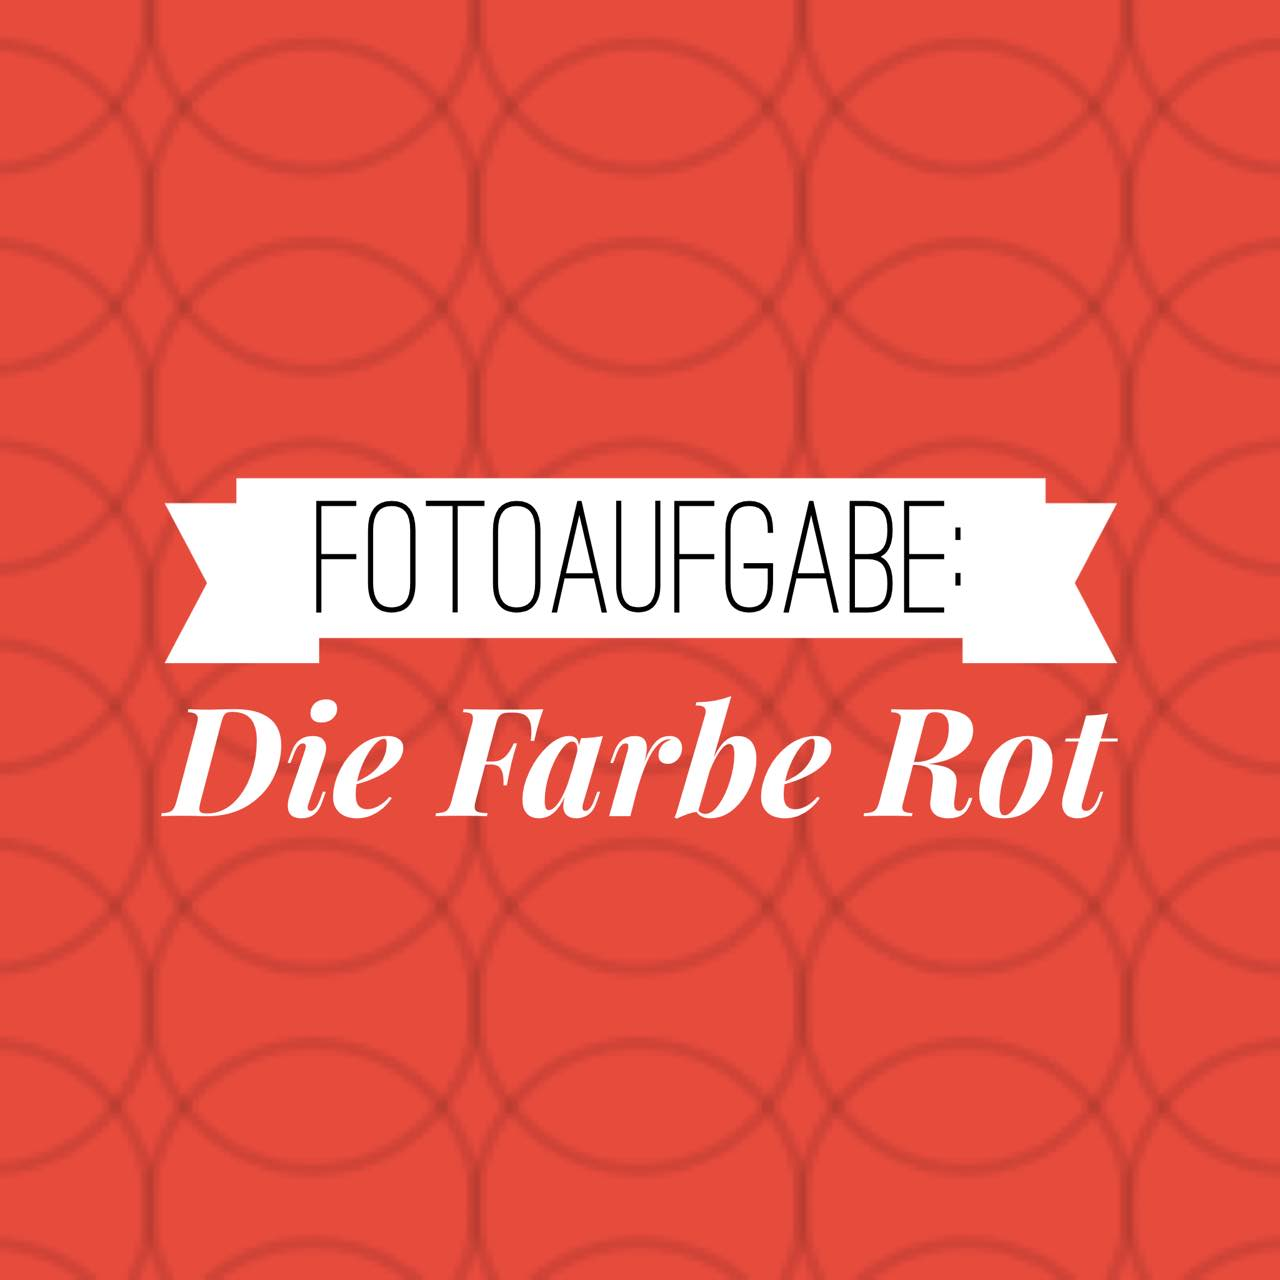 Farbe Rot Buche Fotokurs – Fotoaufgabe 17: Die Farbe Rot | Ig-fotografie